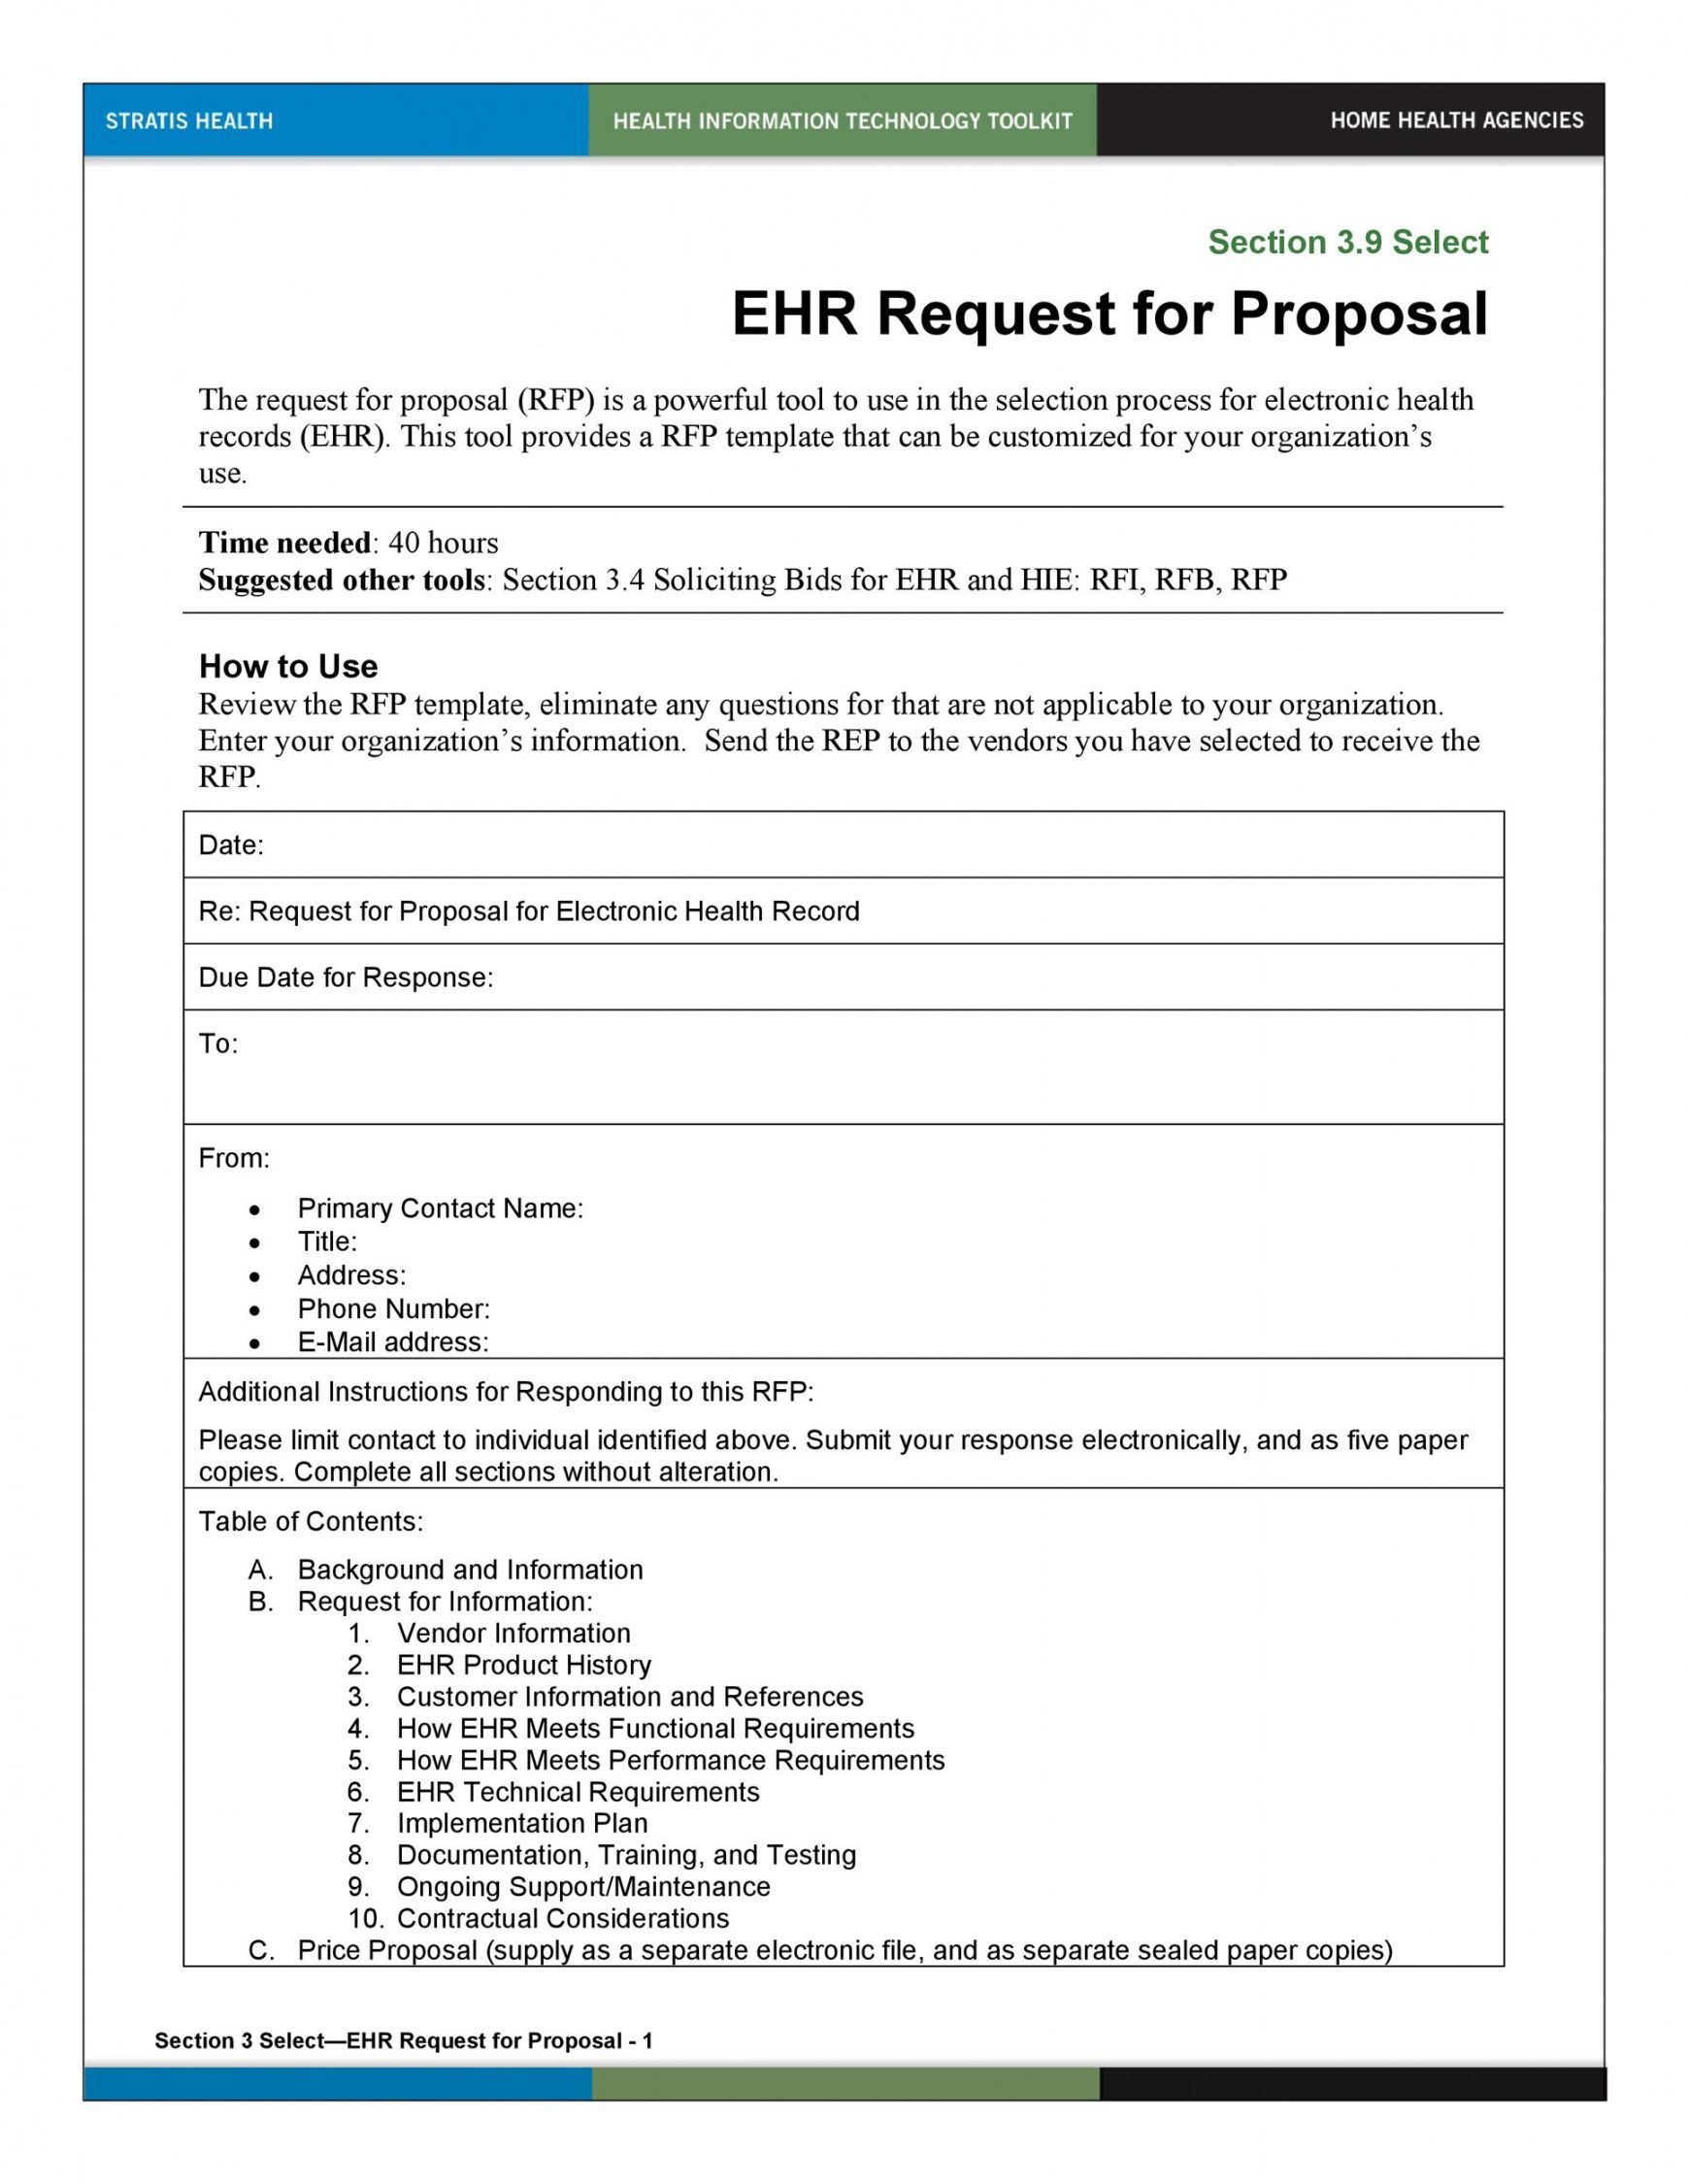 Event Planning Request For Proposal Template In 2021 Request For Proposal Proposal Templates Business Proposal Template Request for proposal template doc